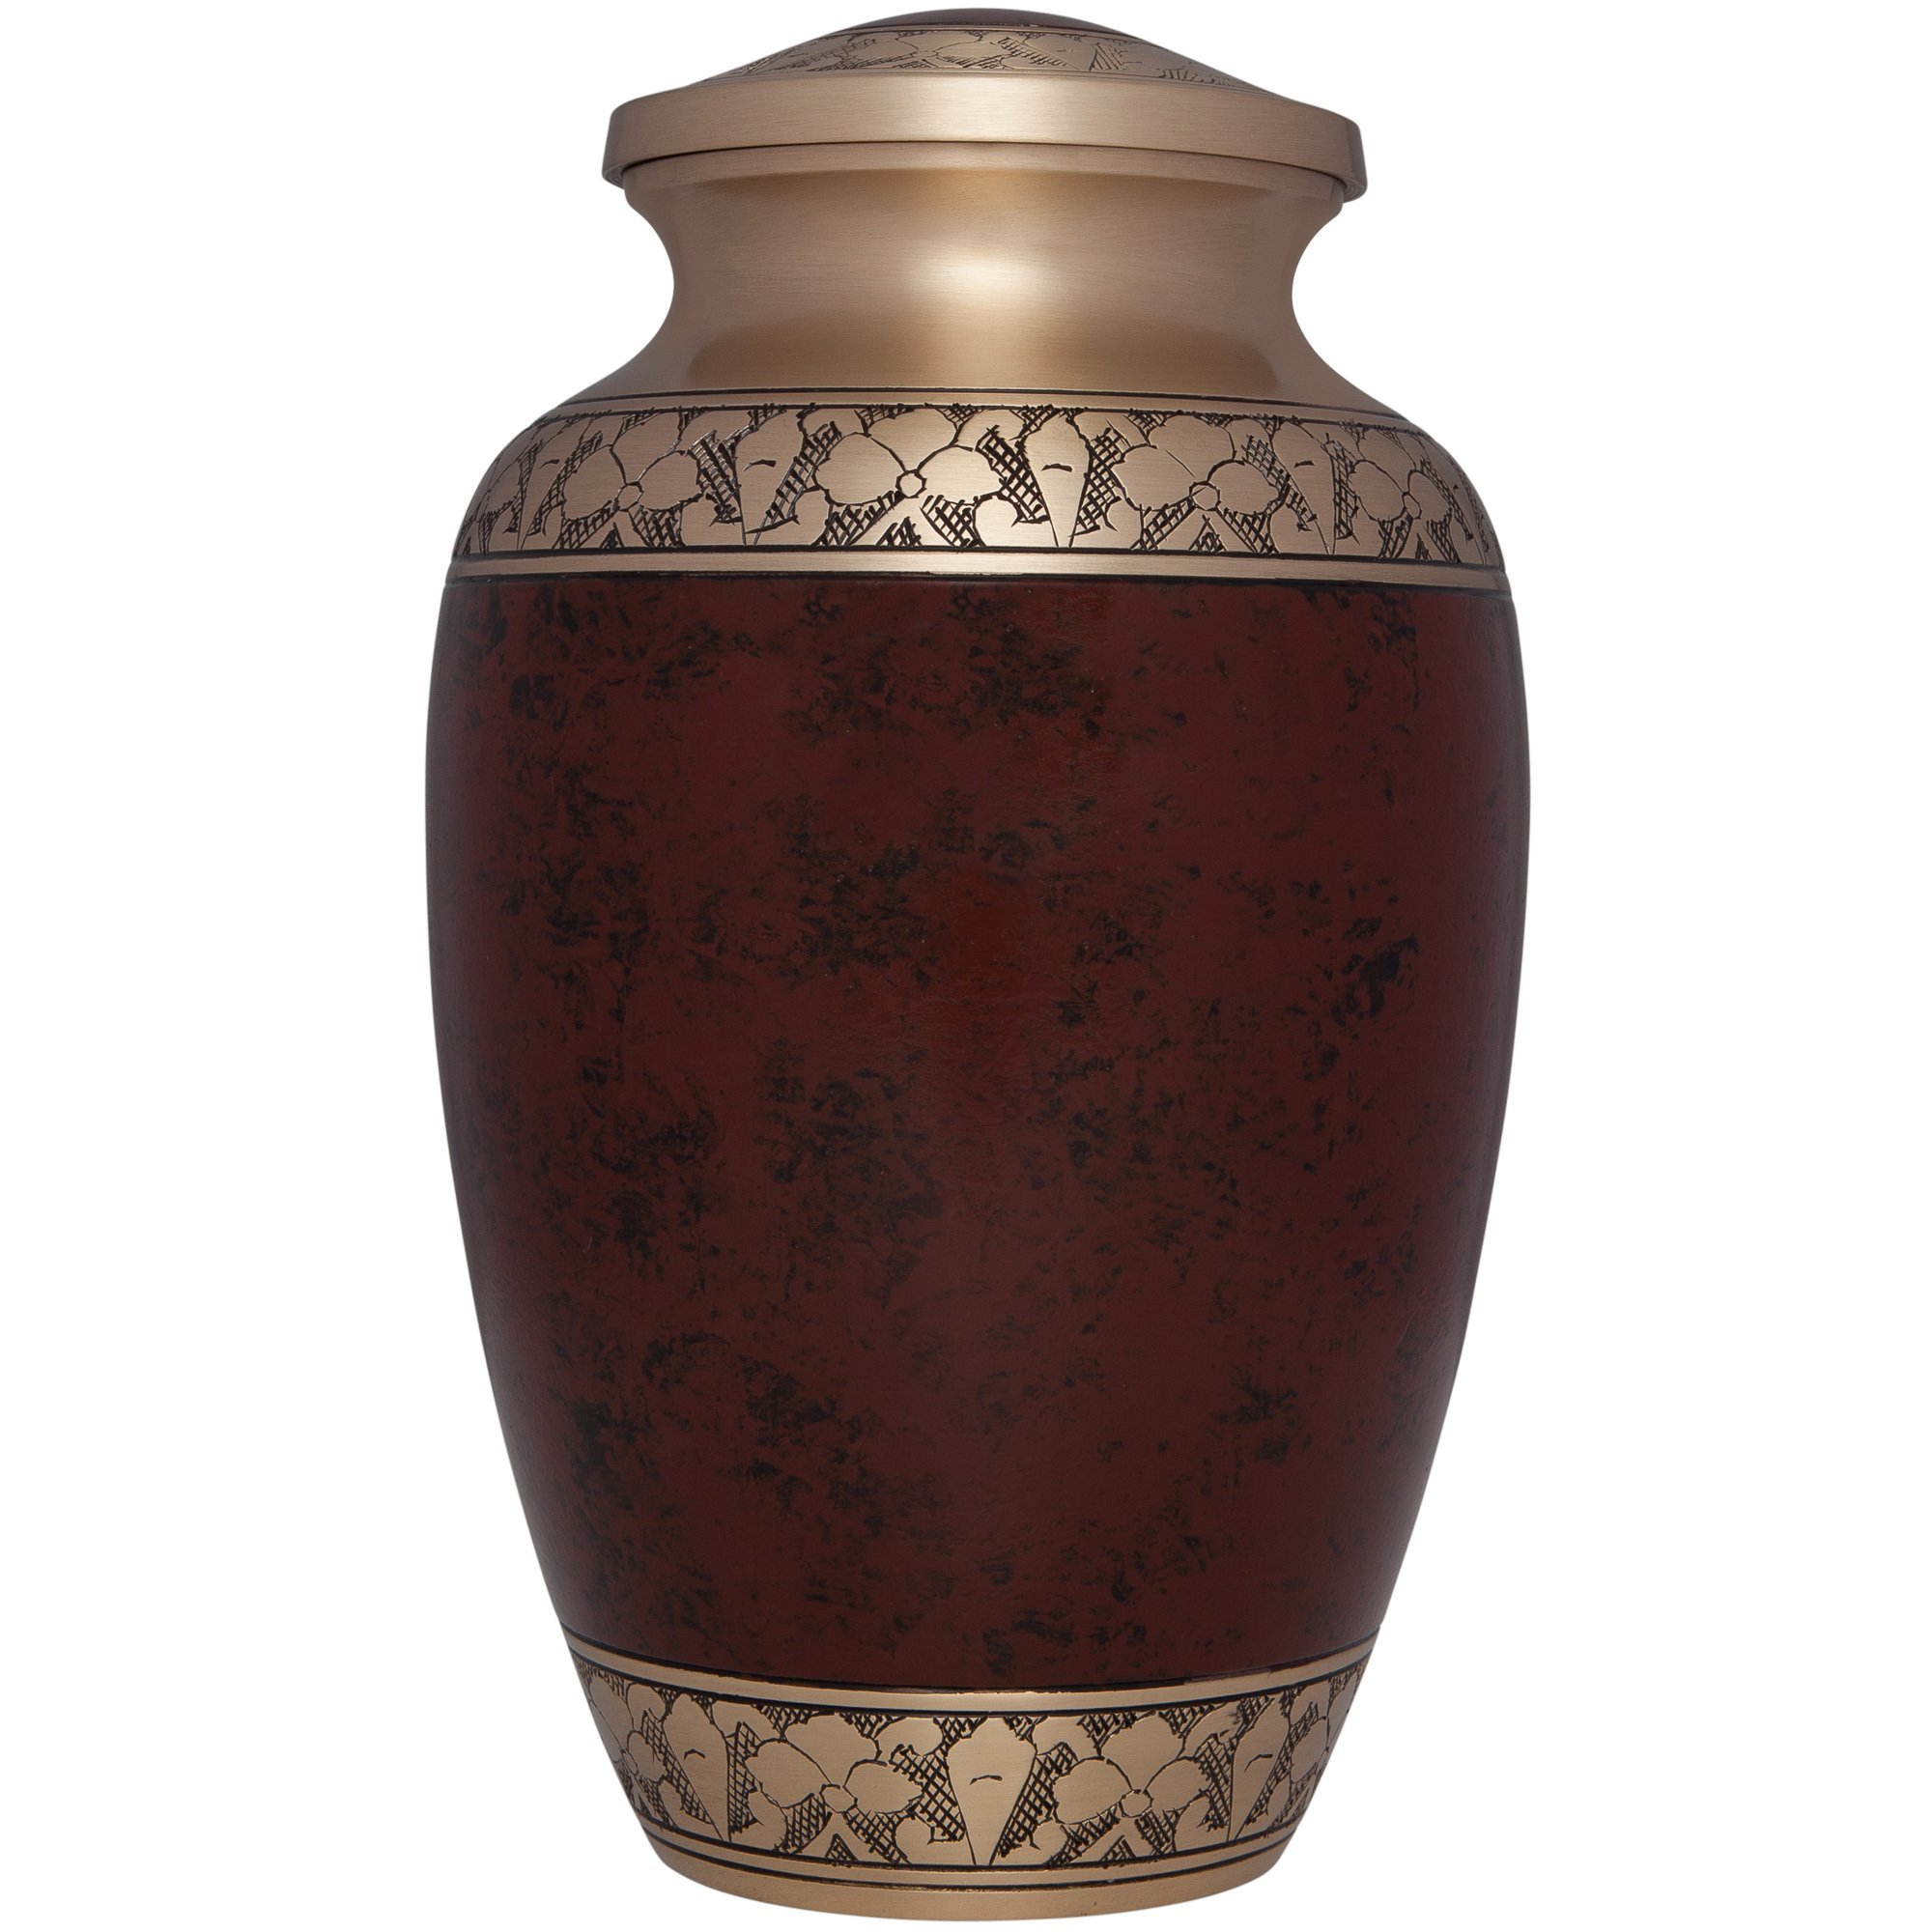 Brown Funeral Urn by Liliane Memorials - Cremation Urn for Human Ashes - Hand Made in Brass -Suitable for Cemetery Burial or Niche - Large Size fits remains of Adults up to 200 lbs- Tranquility Brown by Liliane Memorials (Image #1)